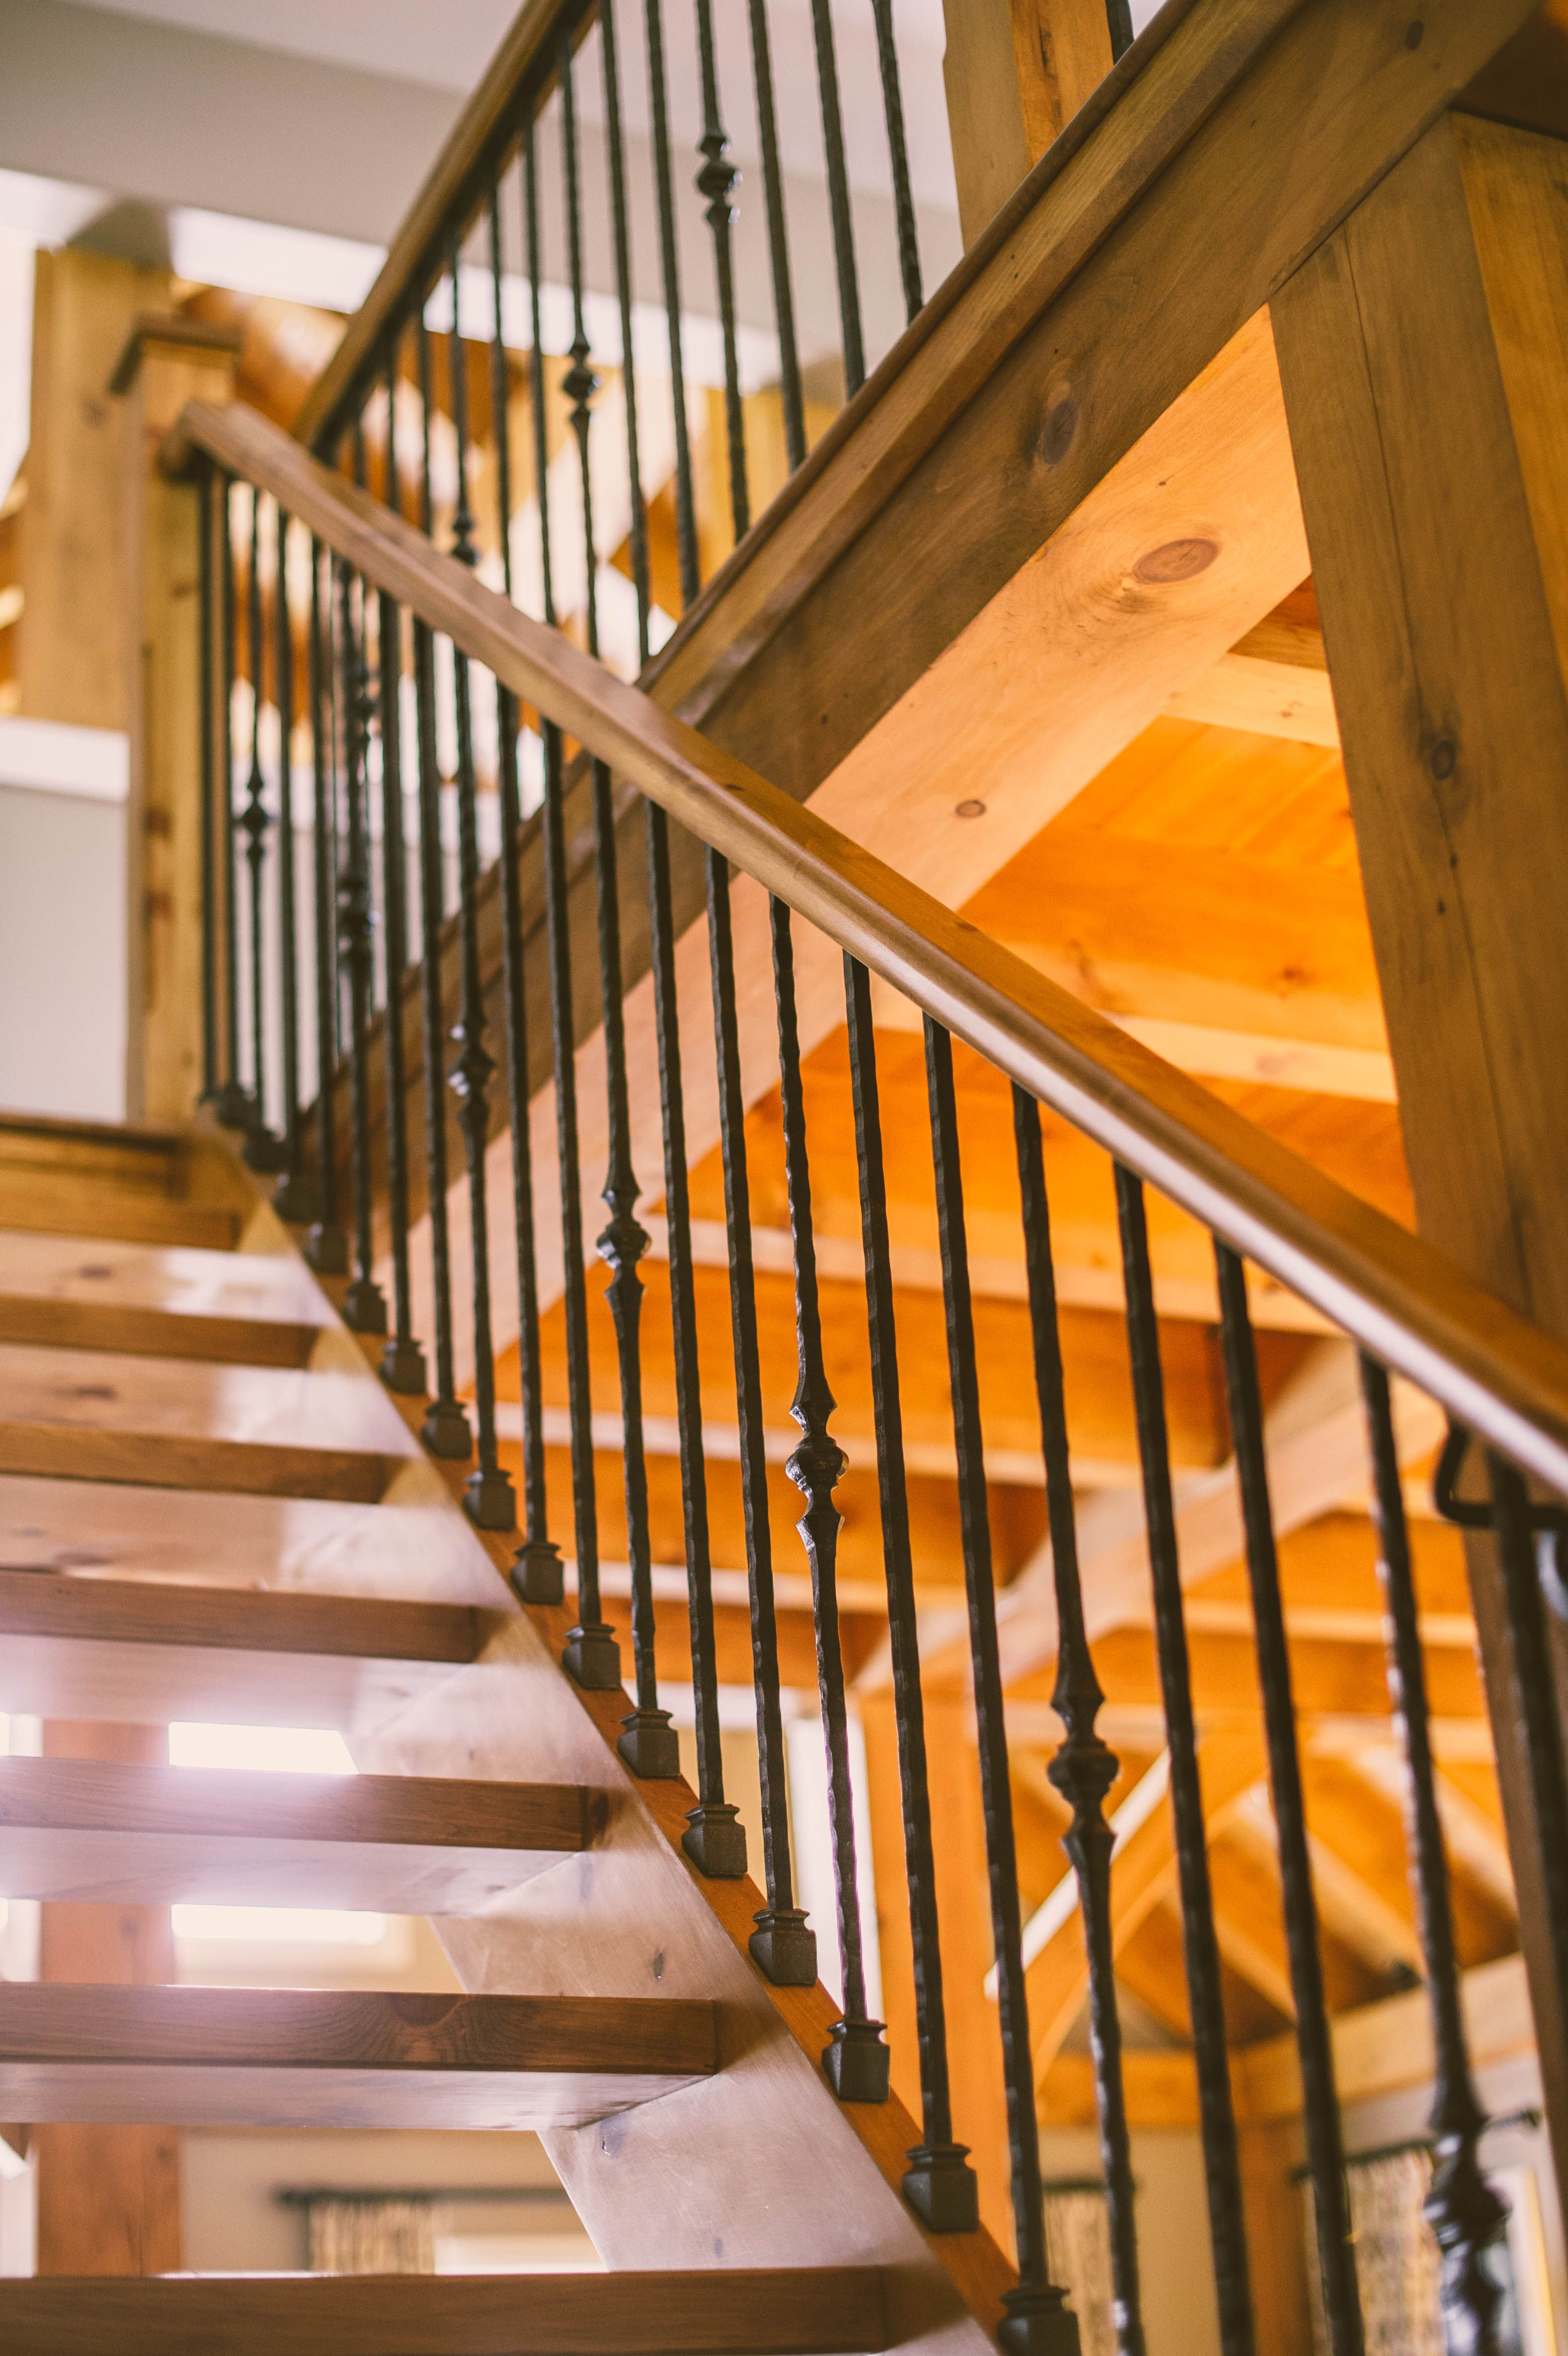 Superbe Standard: Stain Grade Pine Stairs, Nosing And Railings With Open Tread To  The Loft